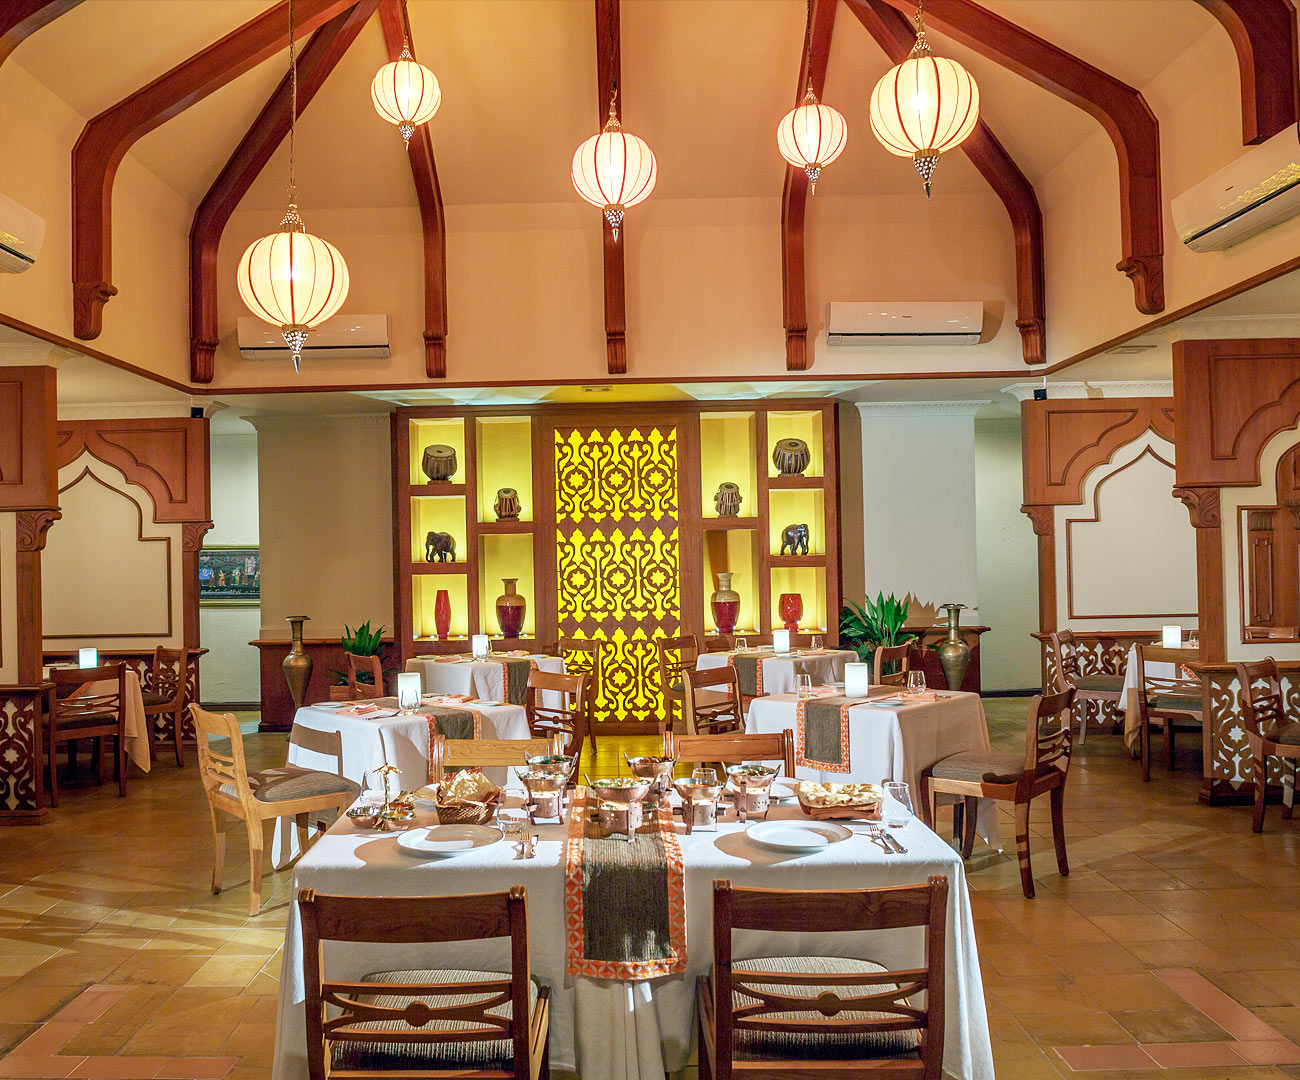 Mahal Indian Restaurant Image | Kurumba Maldives